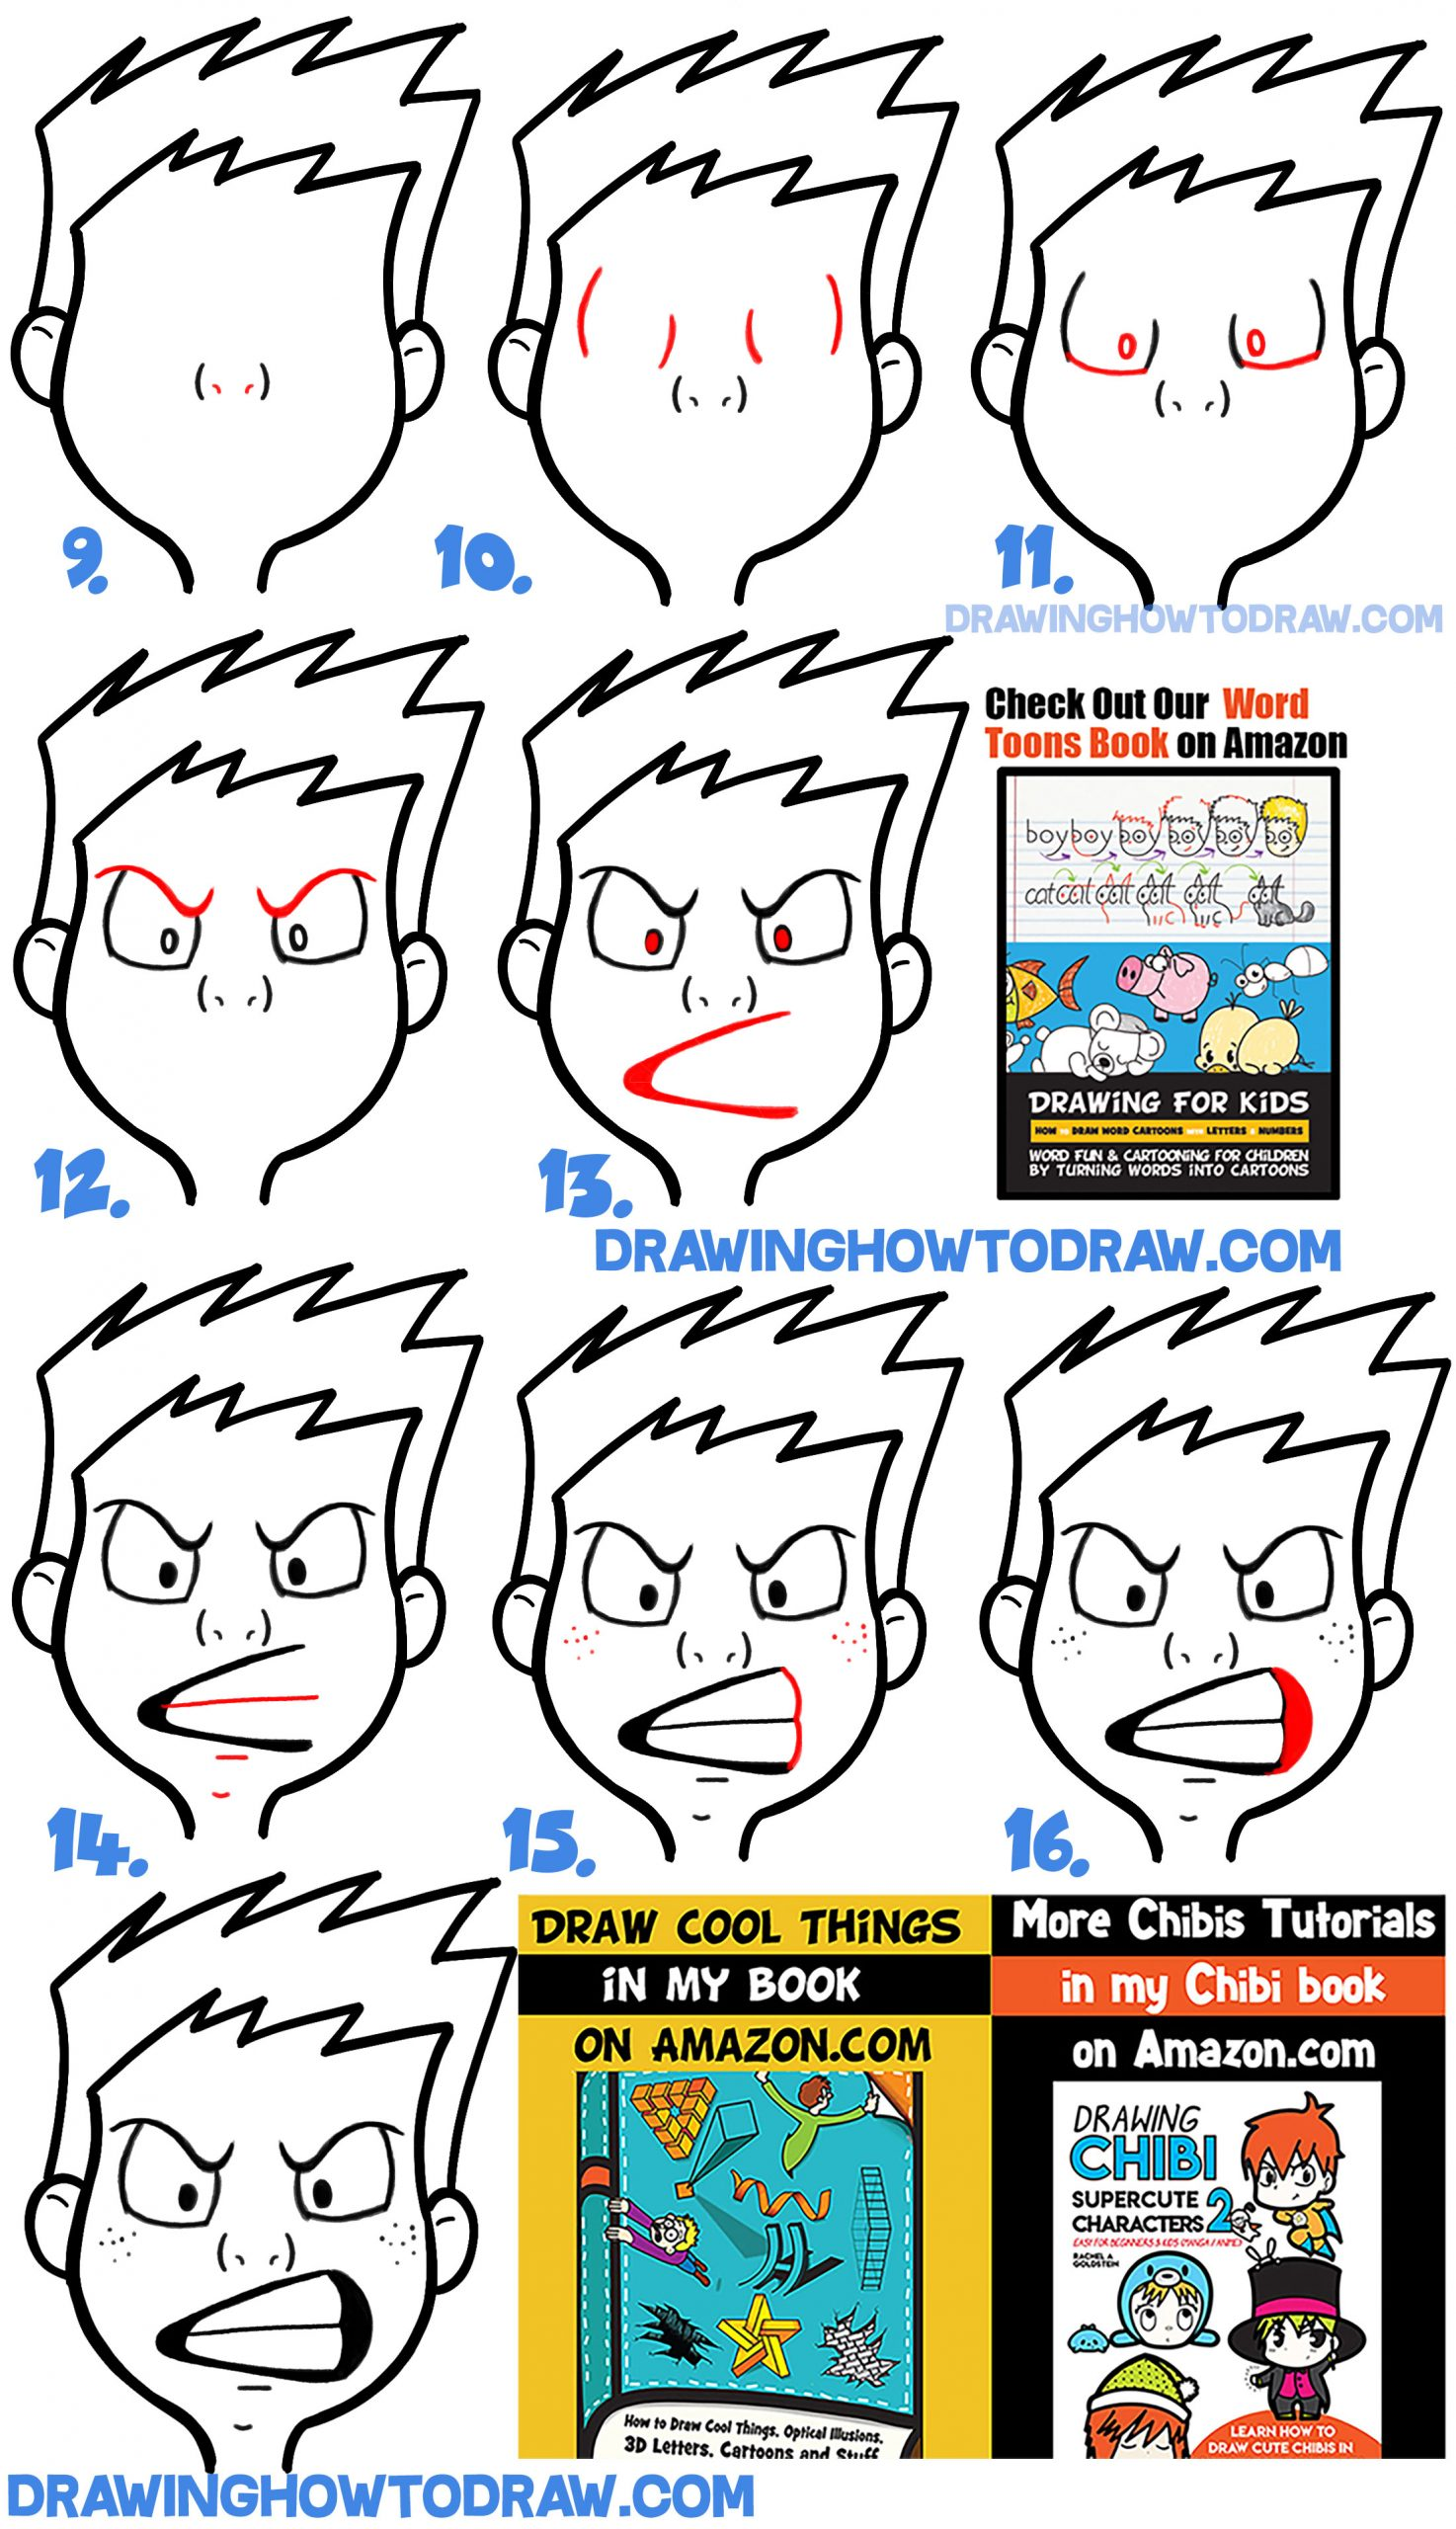 How to Draw Cartoon Facial Expressions : Angry, Furious, Mad : Step by Step Tutorial for Kids